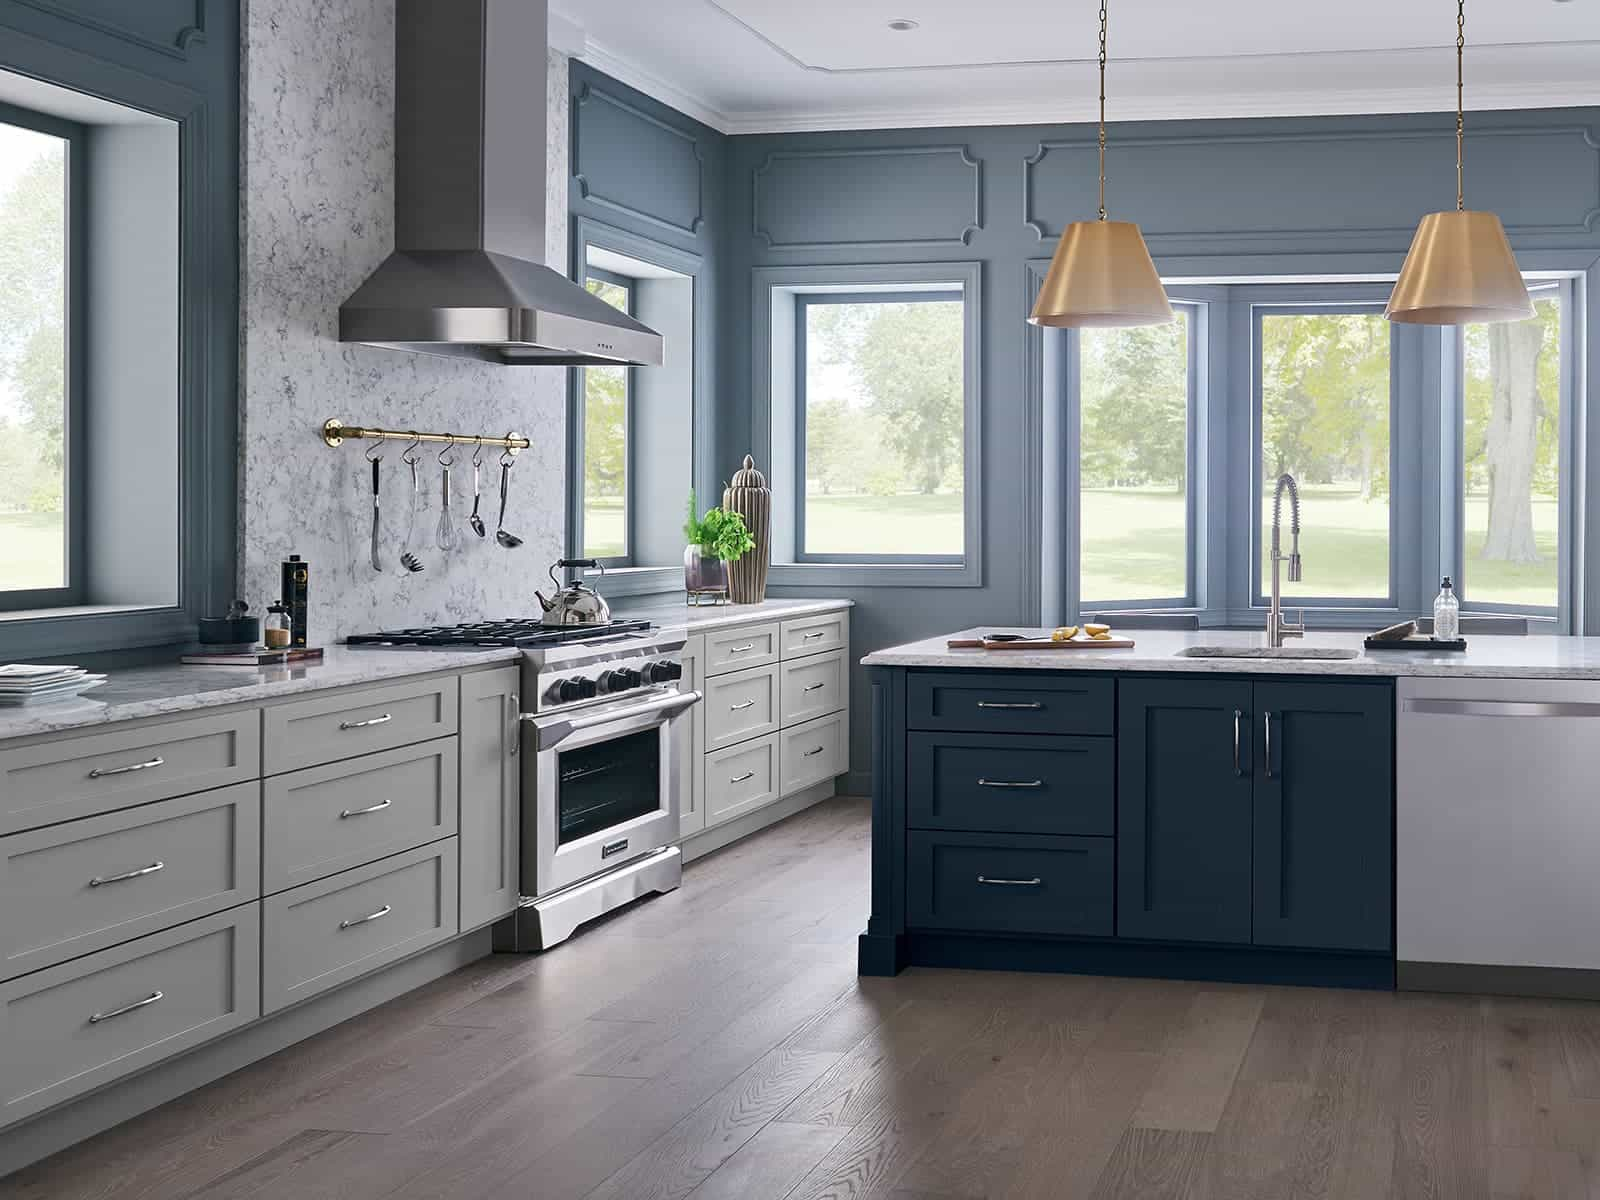 kitchens without upper cabinets - bertch cabinet manfacturing